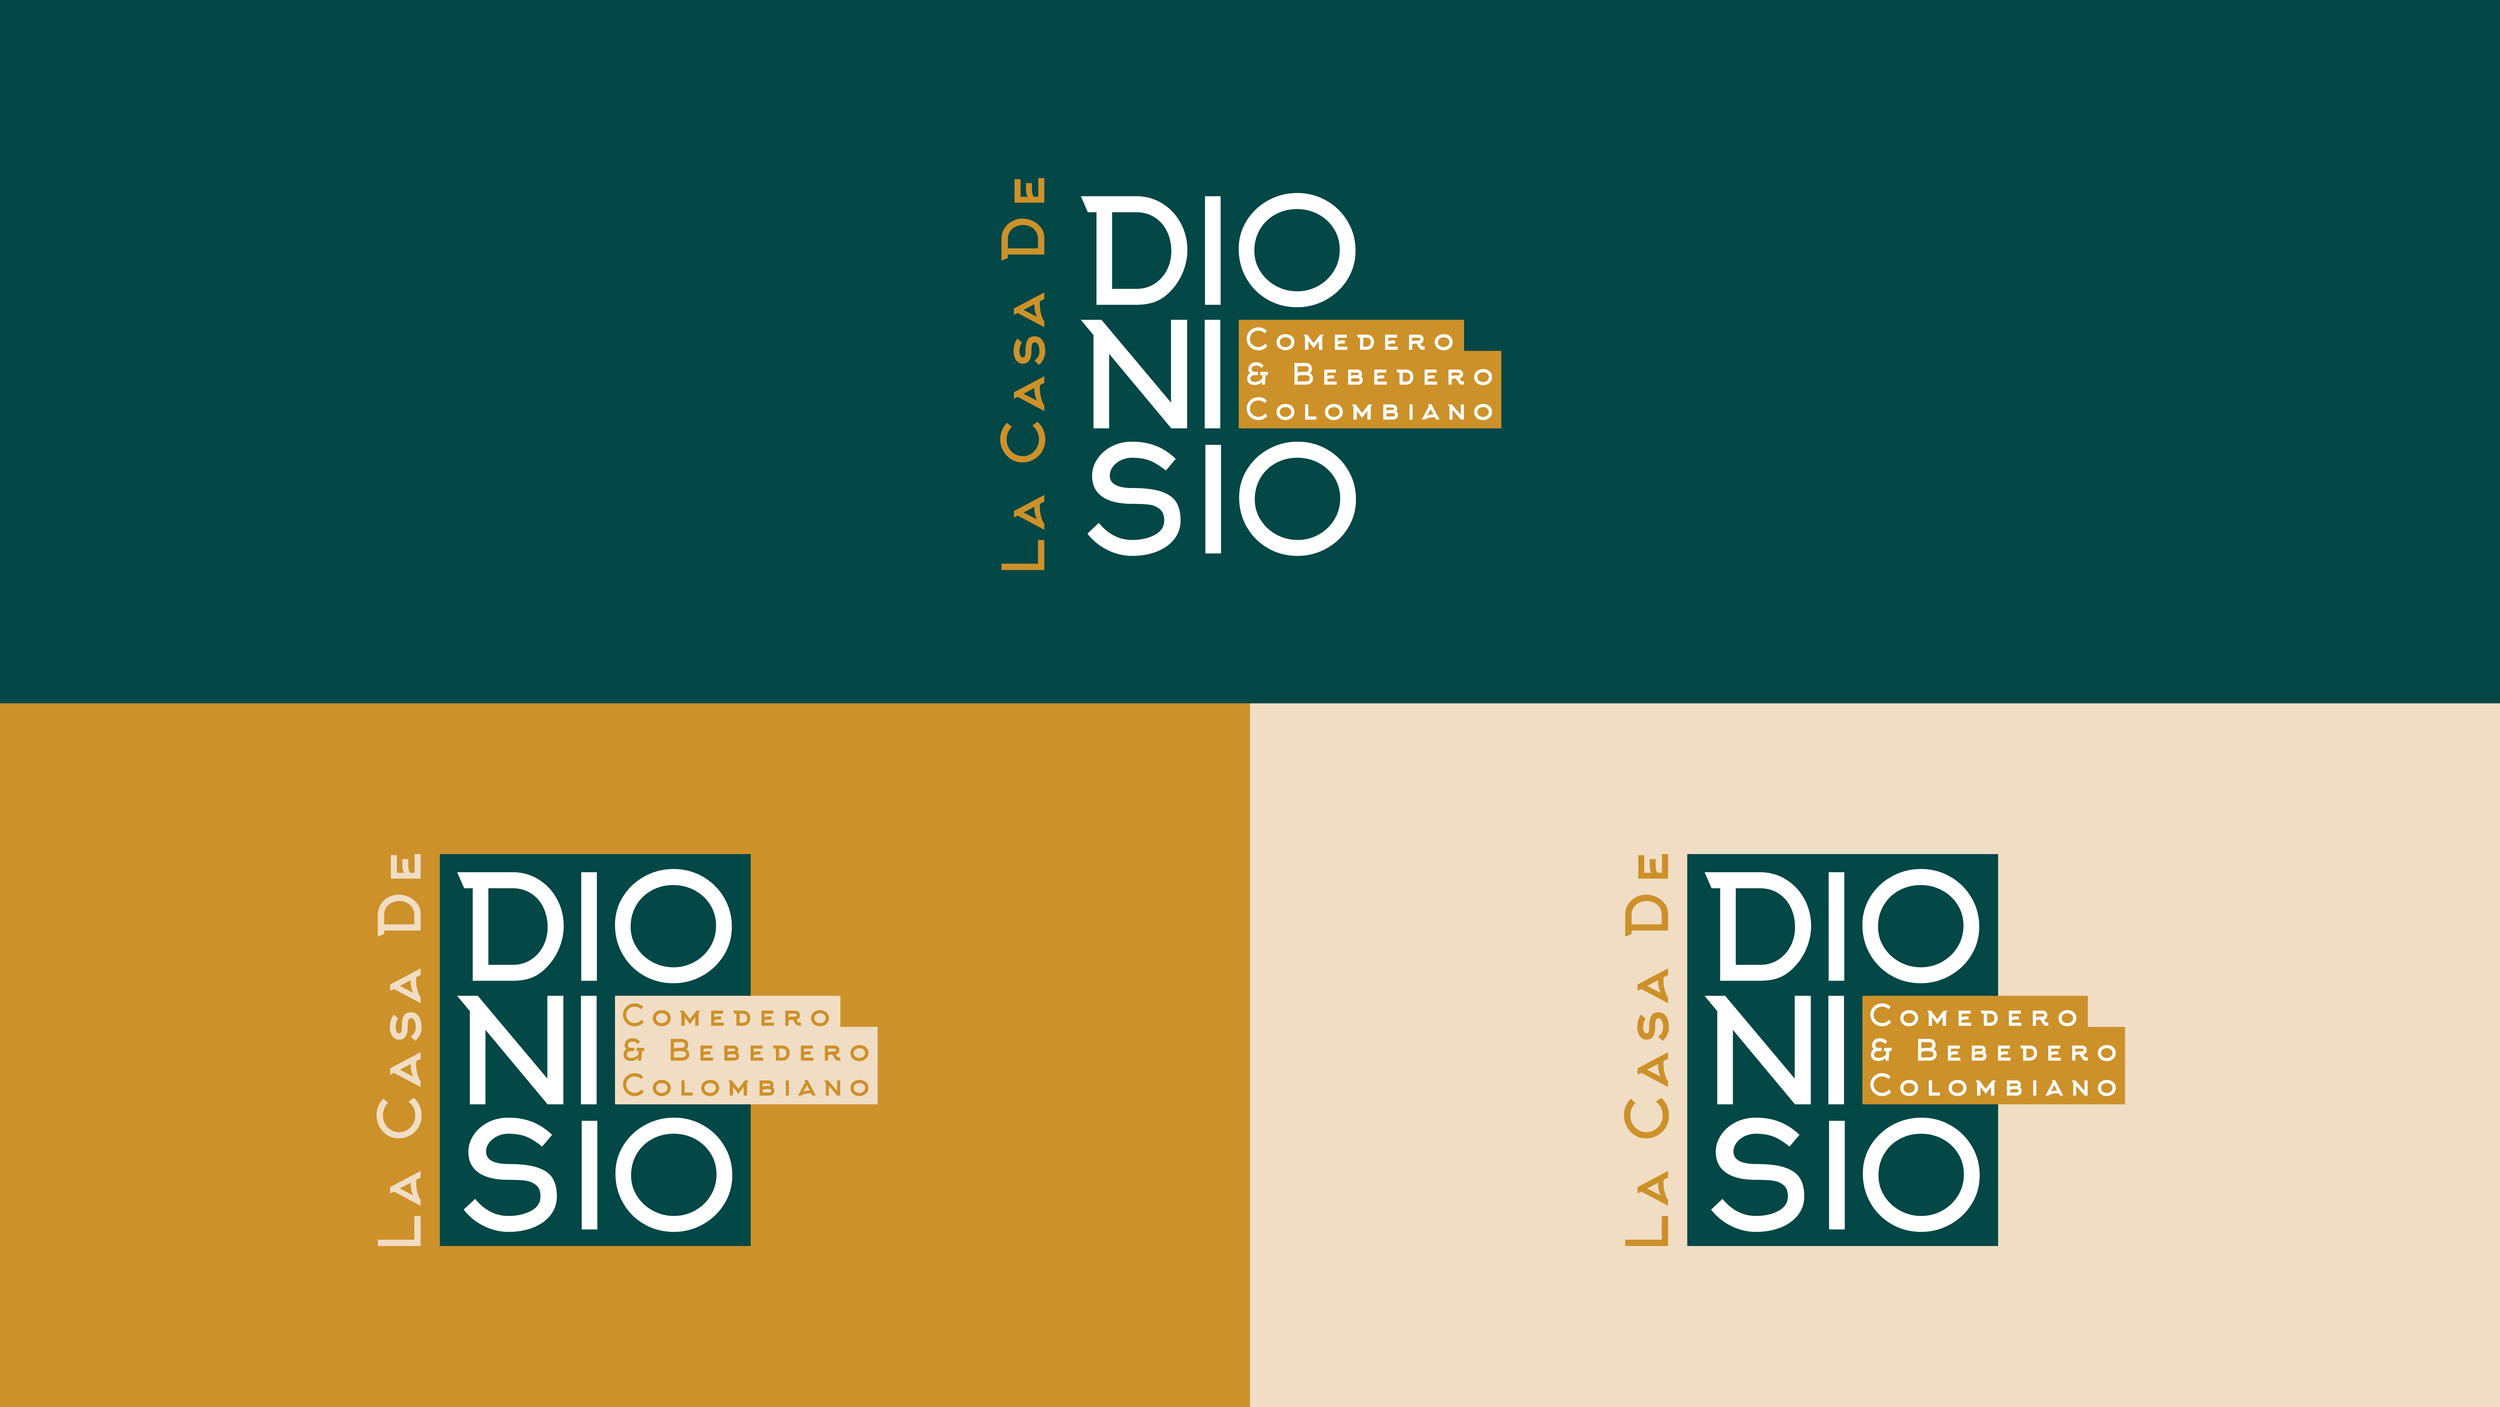 Dionisio_-02.png